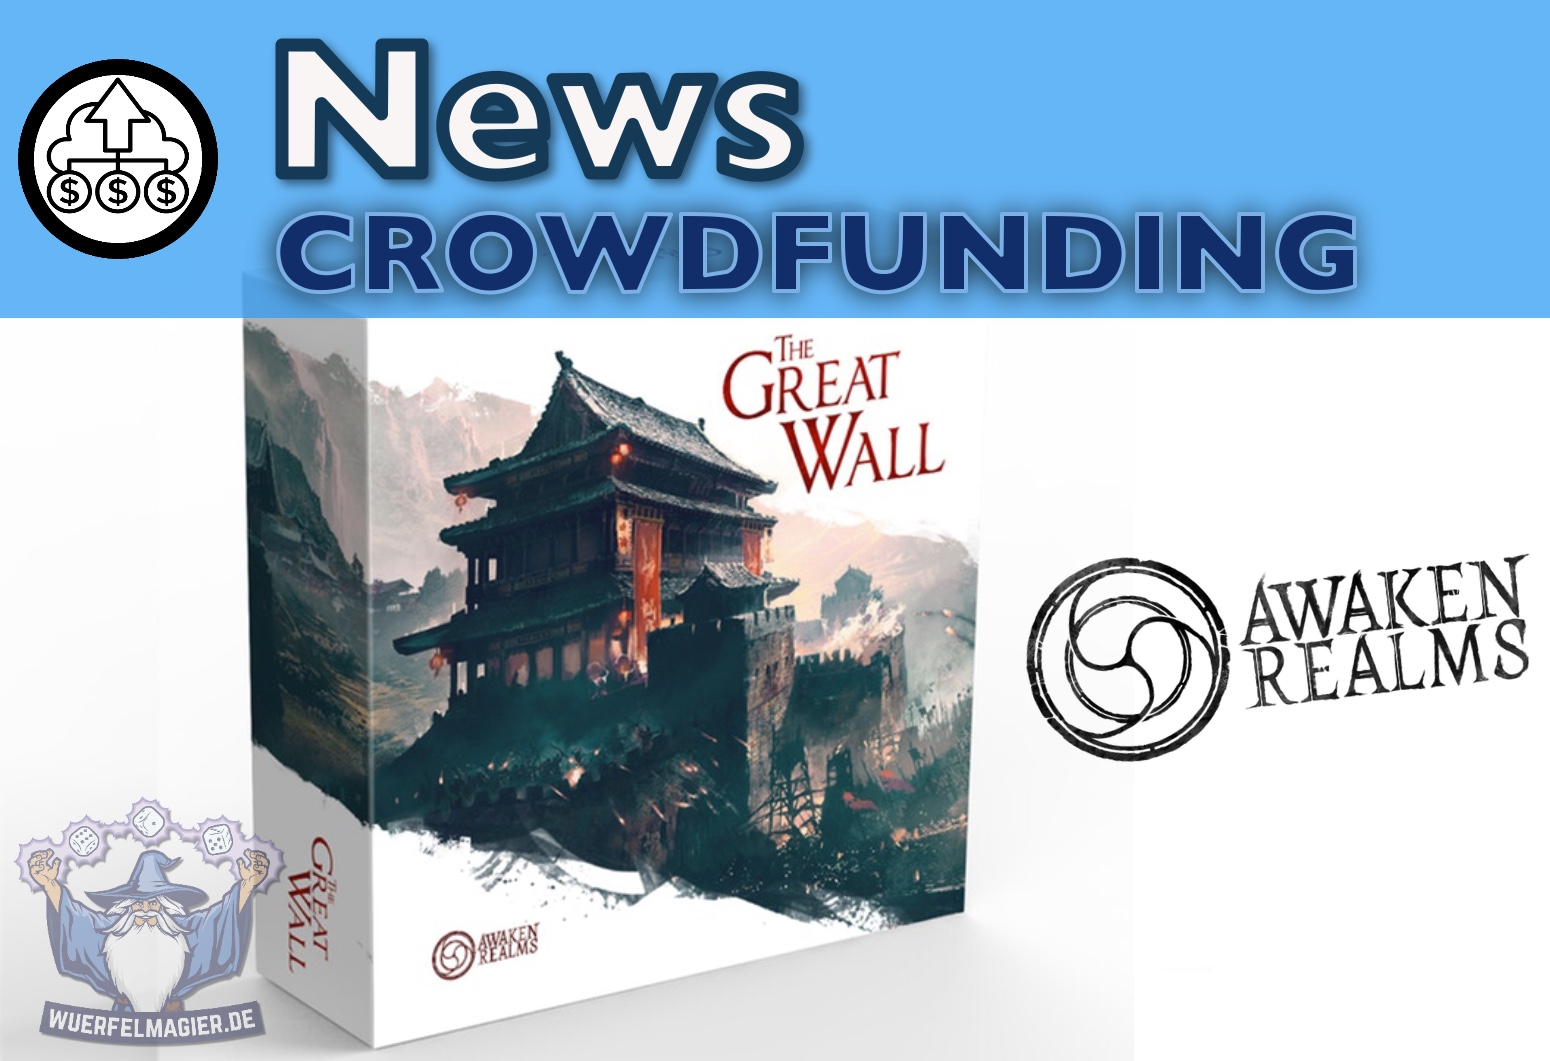 Titelbild The Great Wall Awaken Relams Crowdfunding News